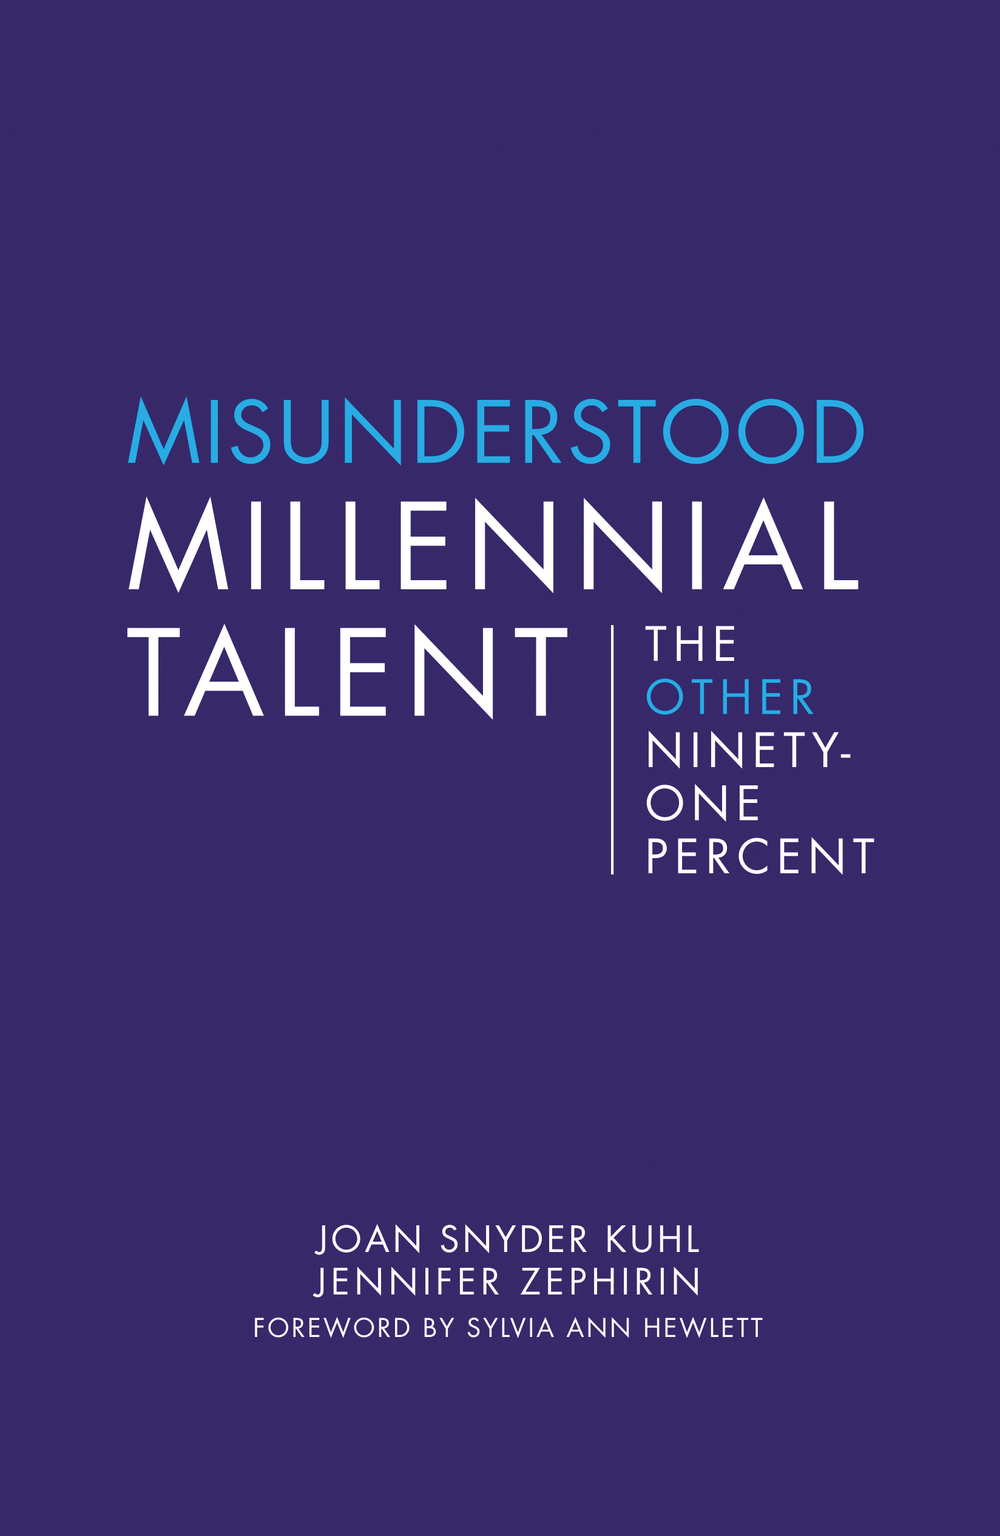 Misunderstood Millennial Talent front cover rgb.jpg